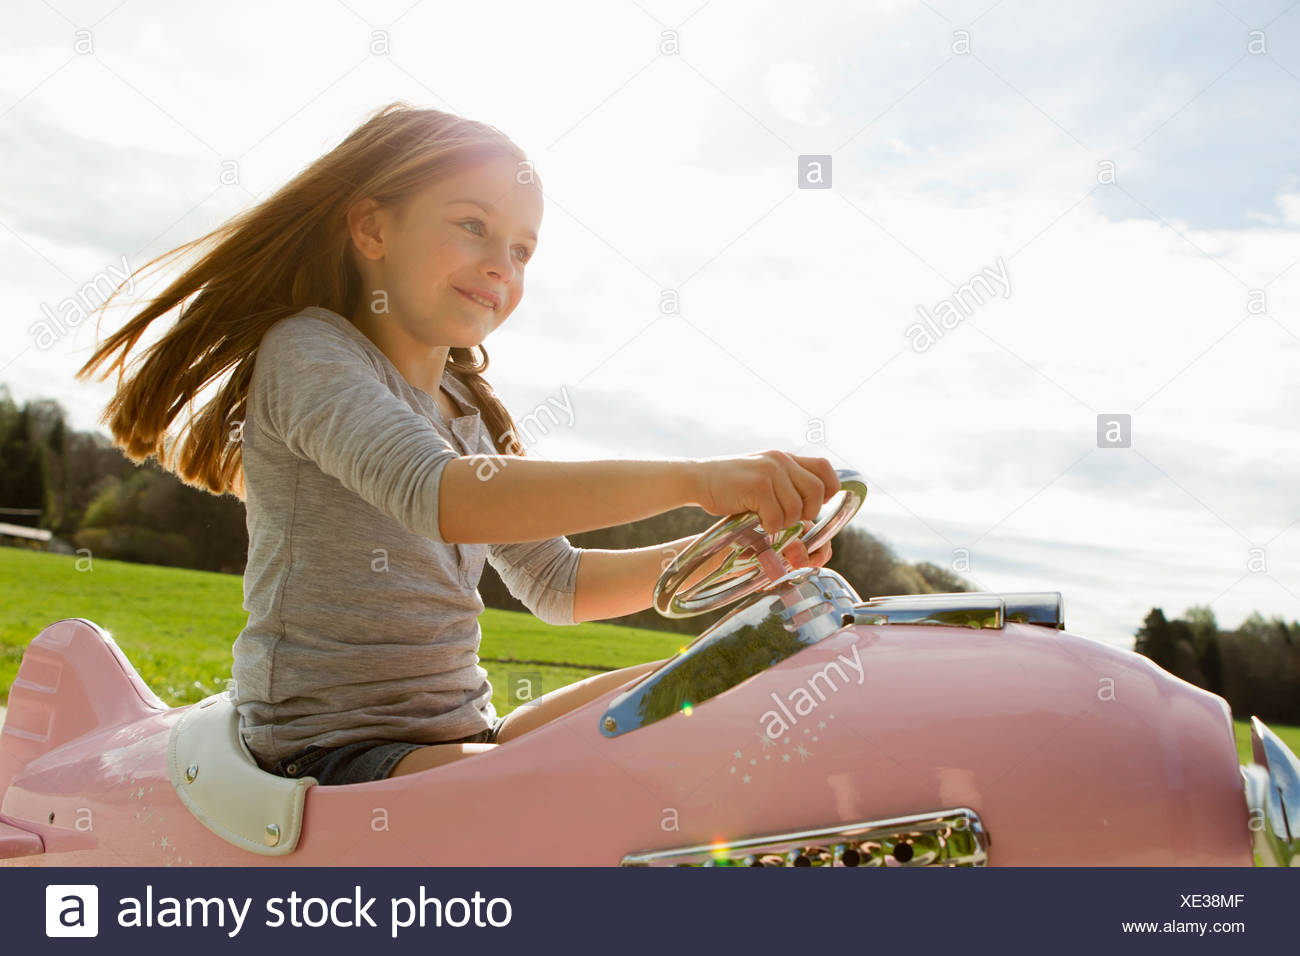 Girl driving toy airplane in field Stock Photo